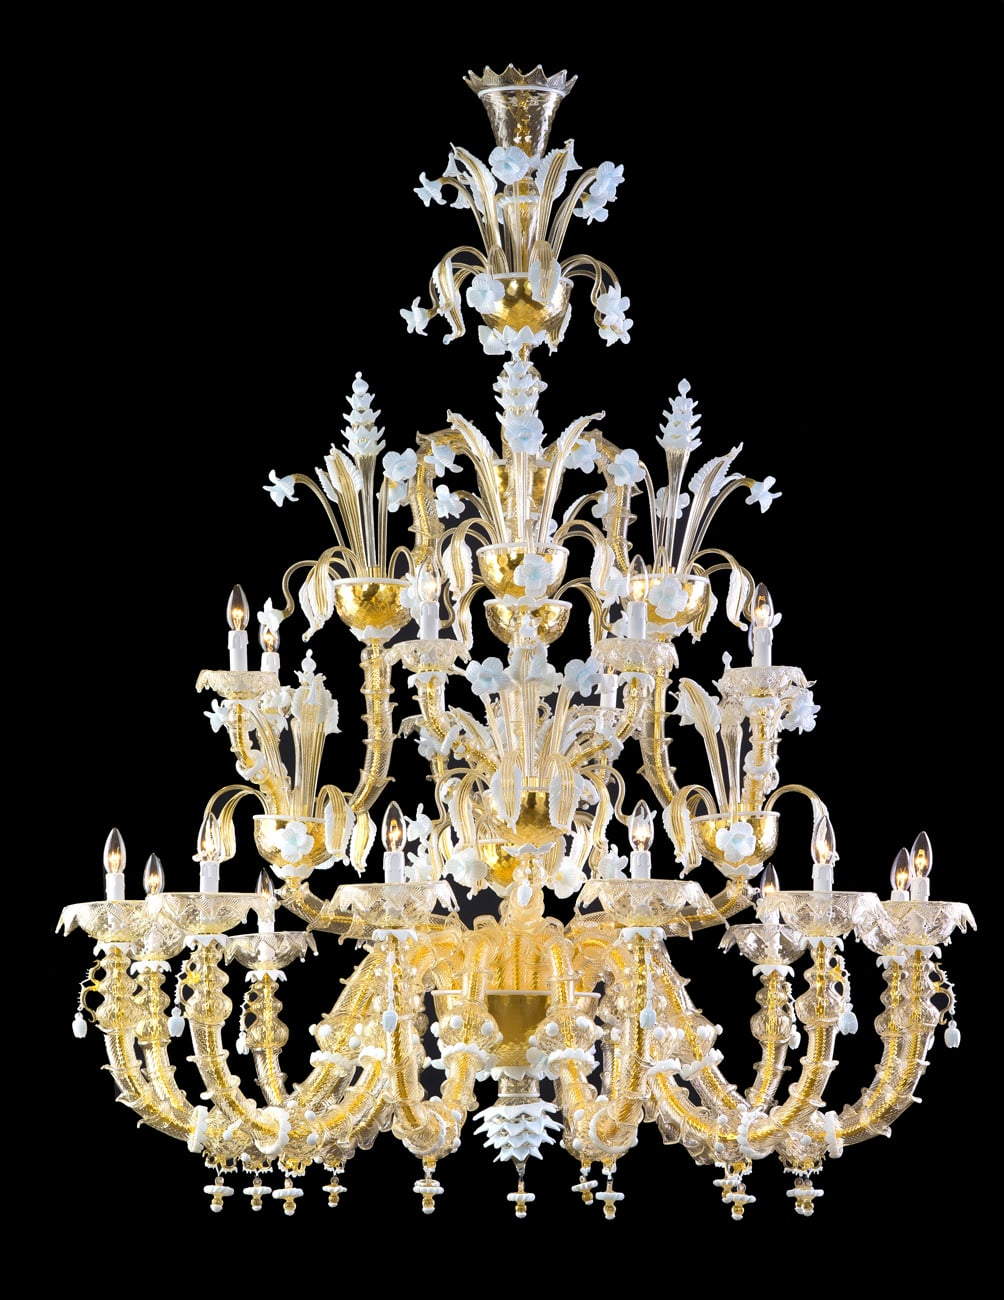 decorative lighting chandeliers 8